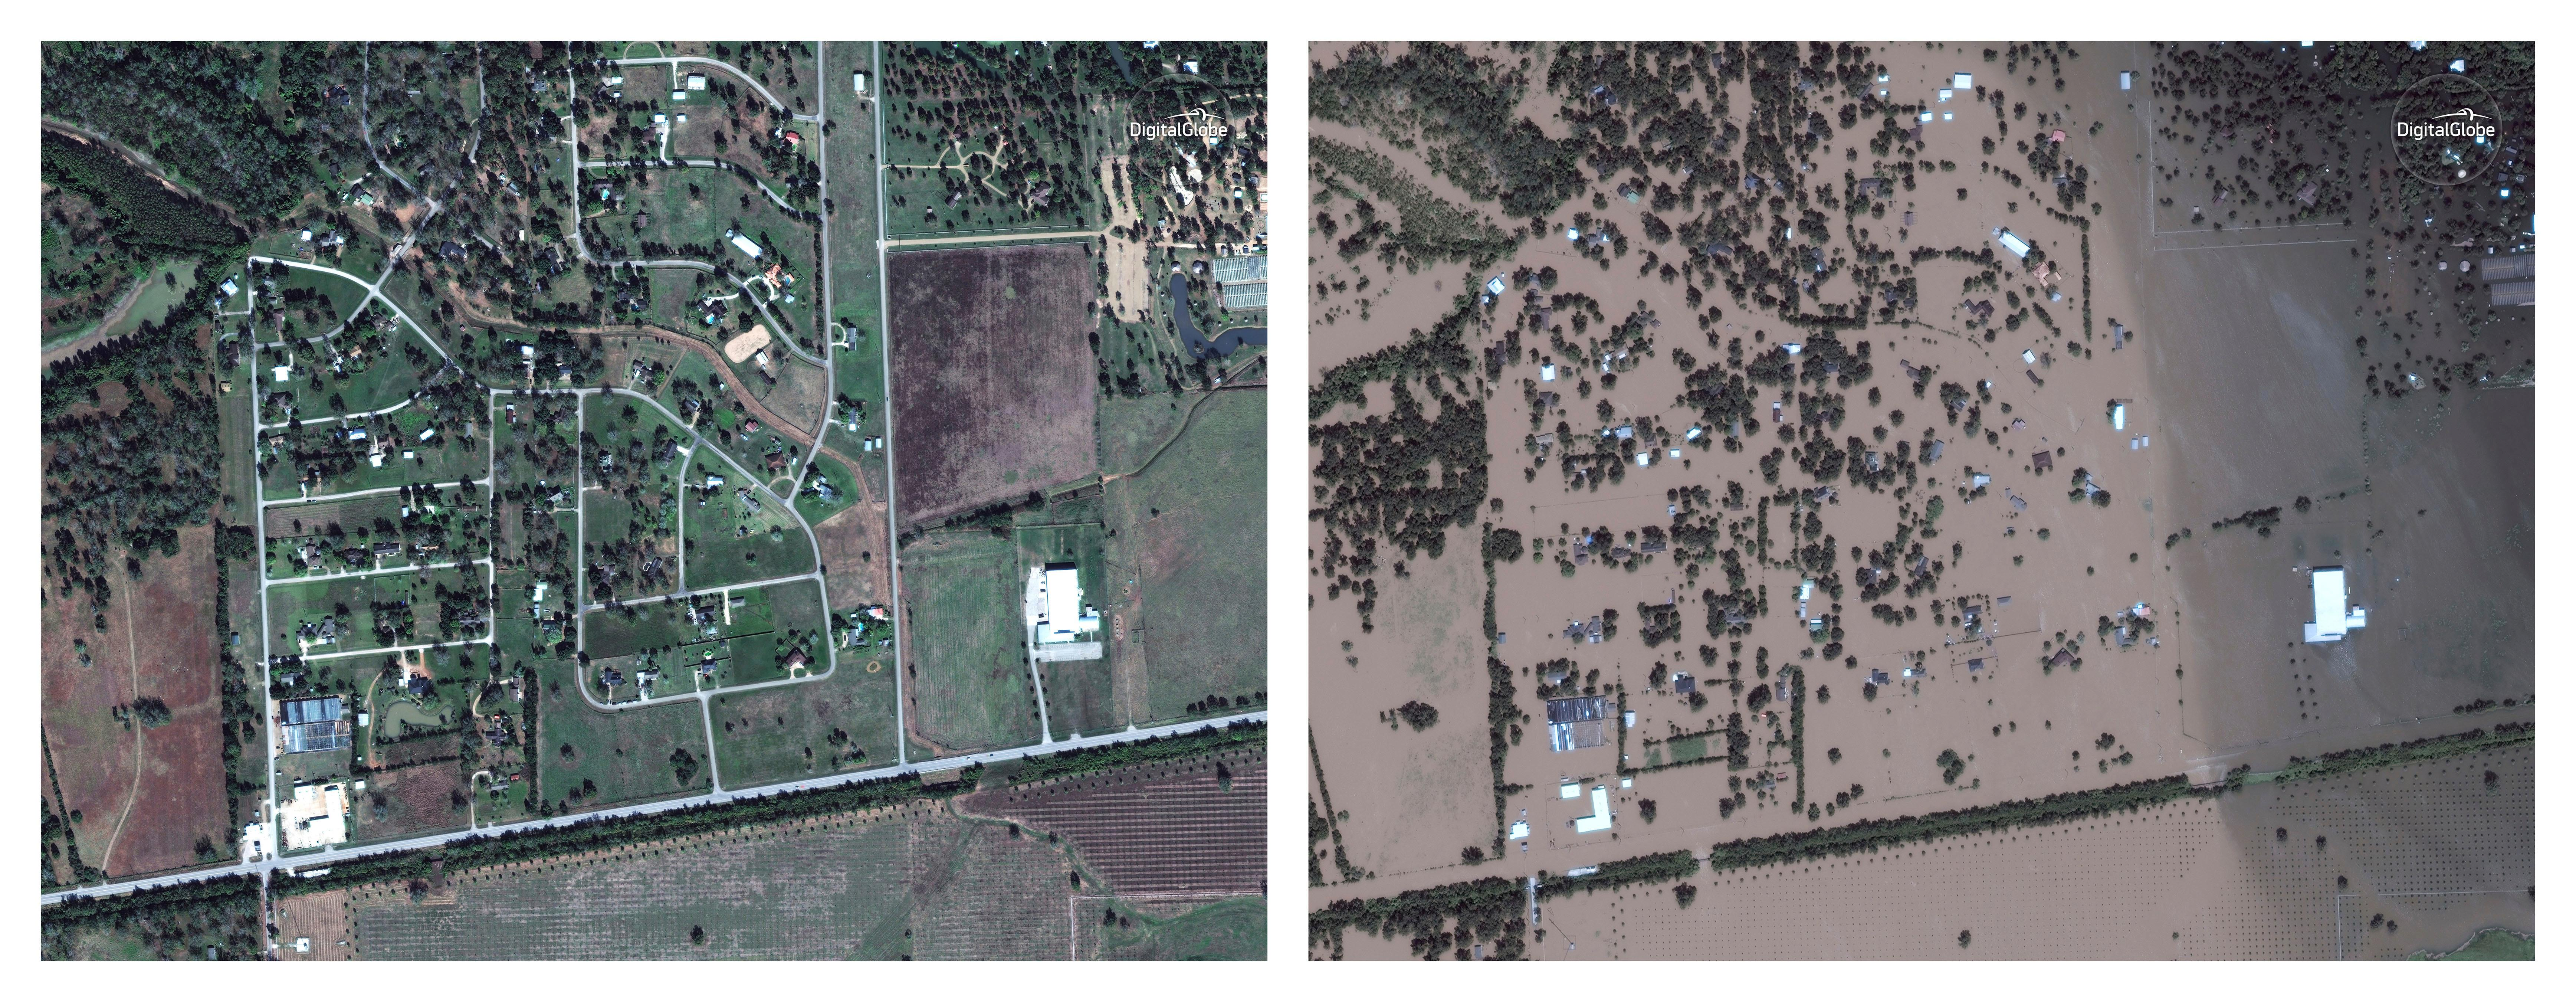 FILE - This combination of satellite images provided by DigitalGlobe shows Simonton, Texas, west of Houston, on Nov. 20, 2016 and Aug. 30, 2017. Hurricane Harvey made landfall at Rockport, Texas on Friday, Aug. 25, 2017. (DigitalGlobe via AP) ©2017 DigitalGlobe